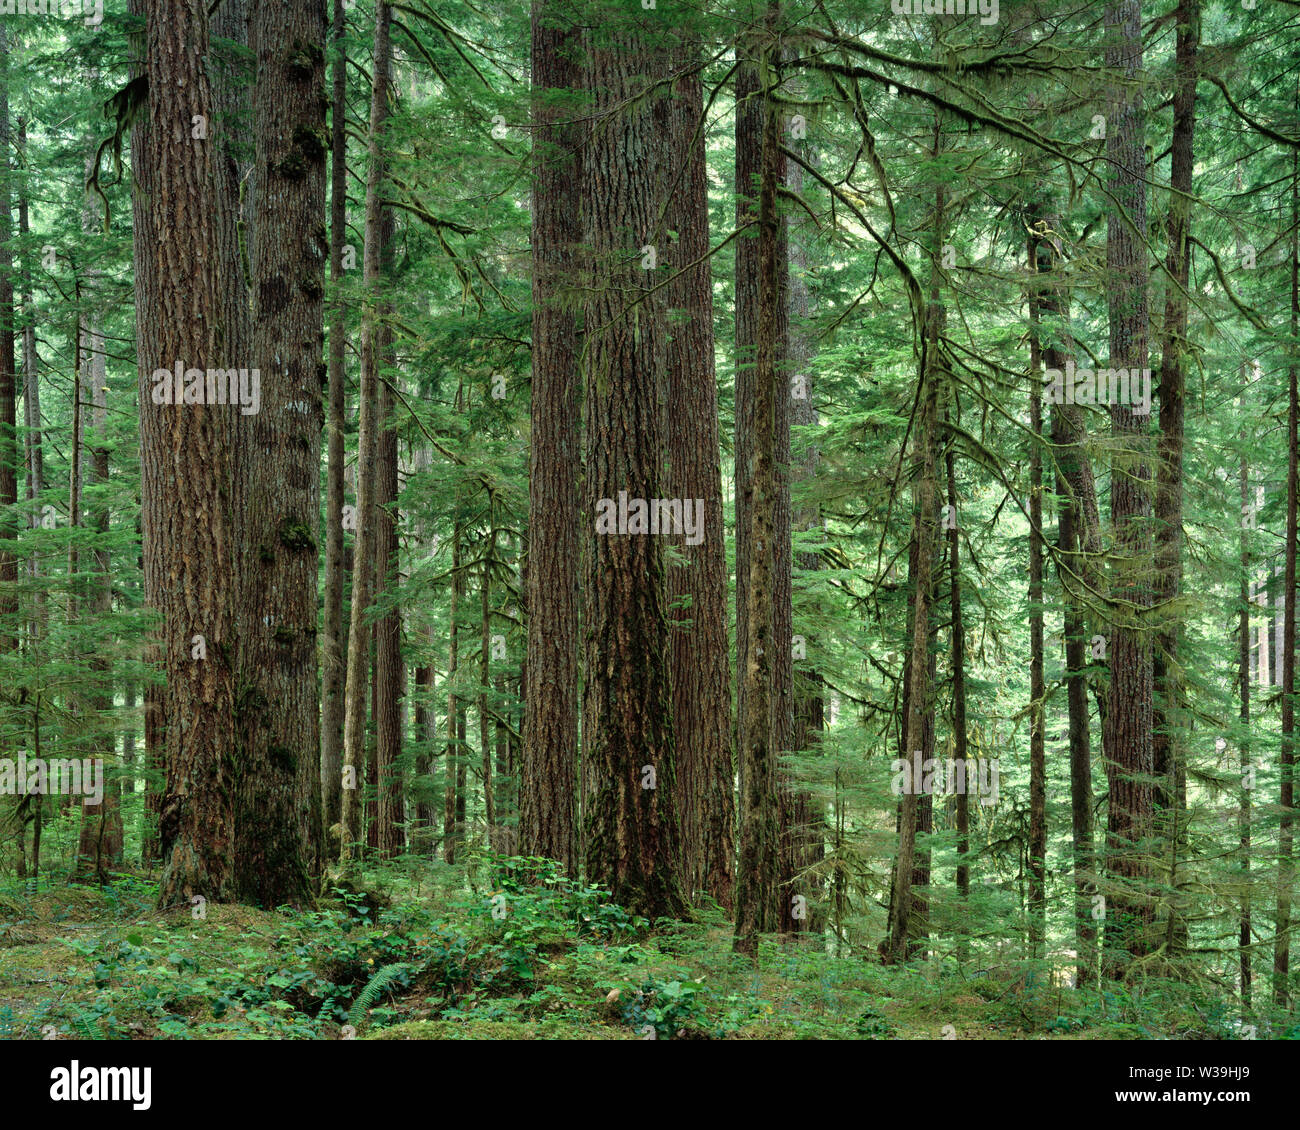 USA, Washington, Mt. Rainier National Park, Trunks of Douglas fir and western hemlock in old growth coniferous forest; Ohanepecosh Valley. - Stock Image